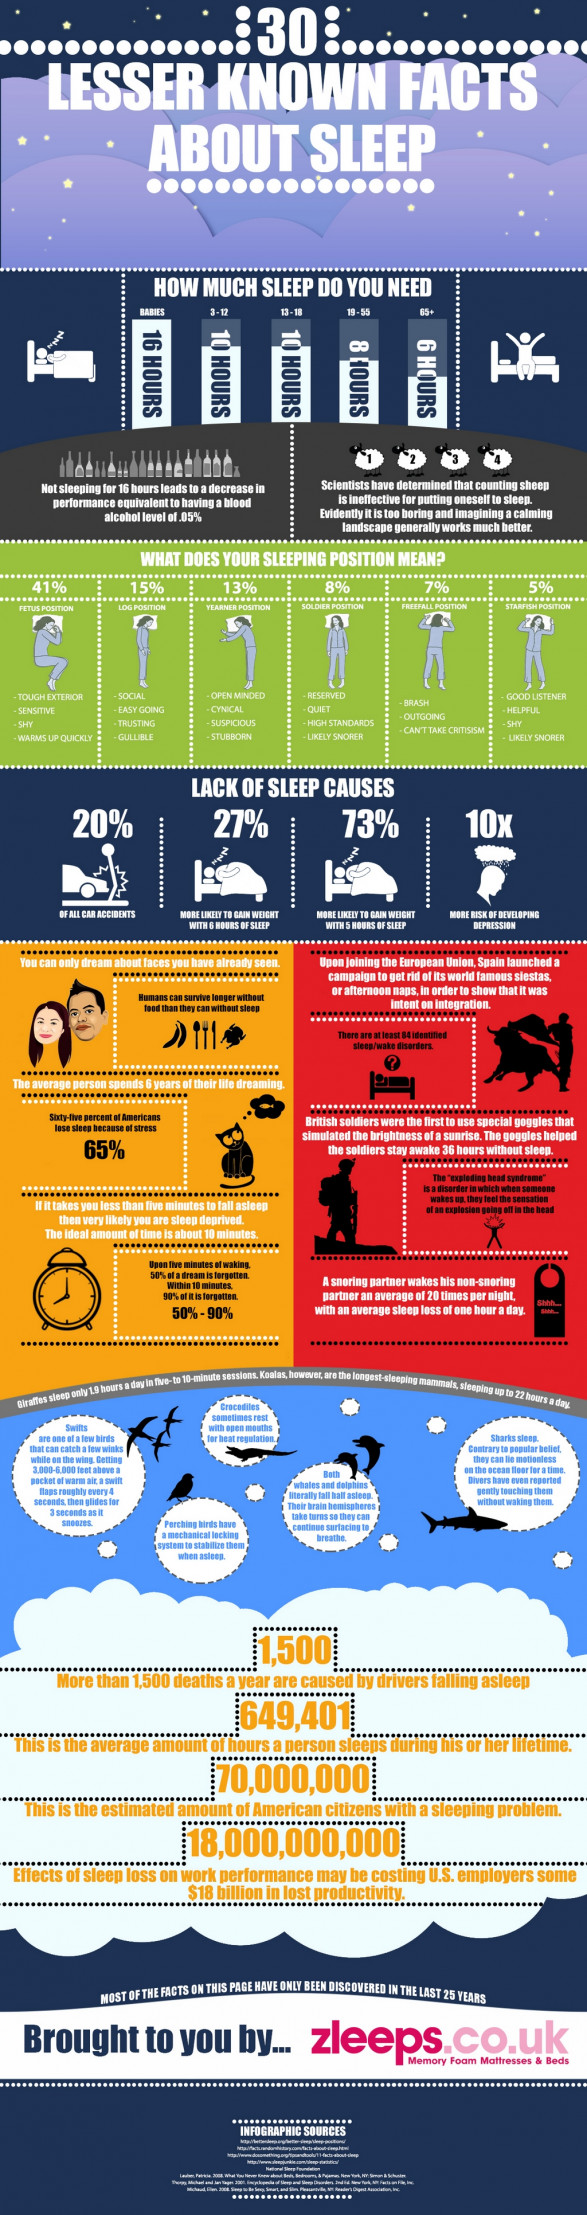 30 Lesser Known facts About Sleep